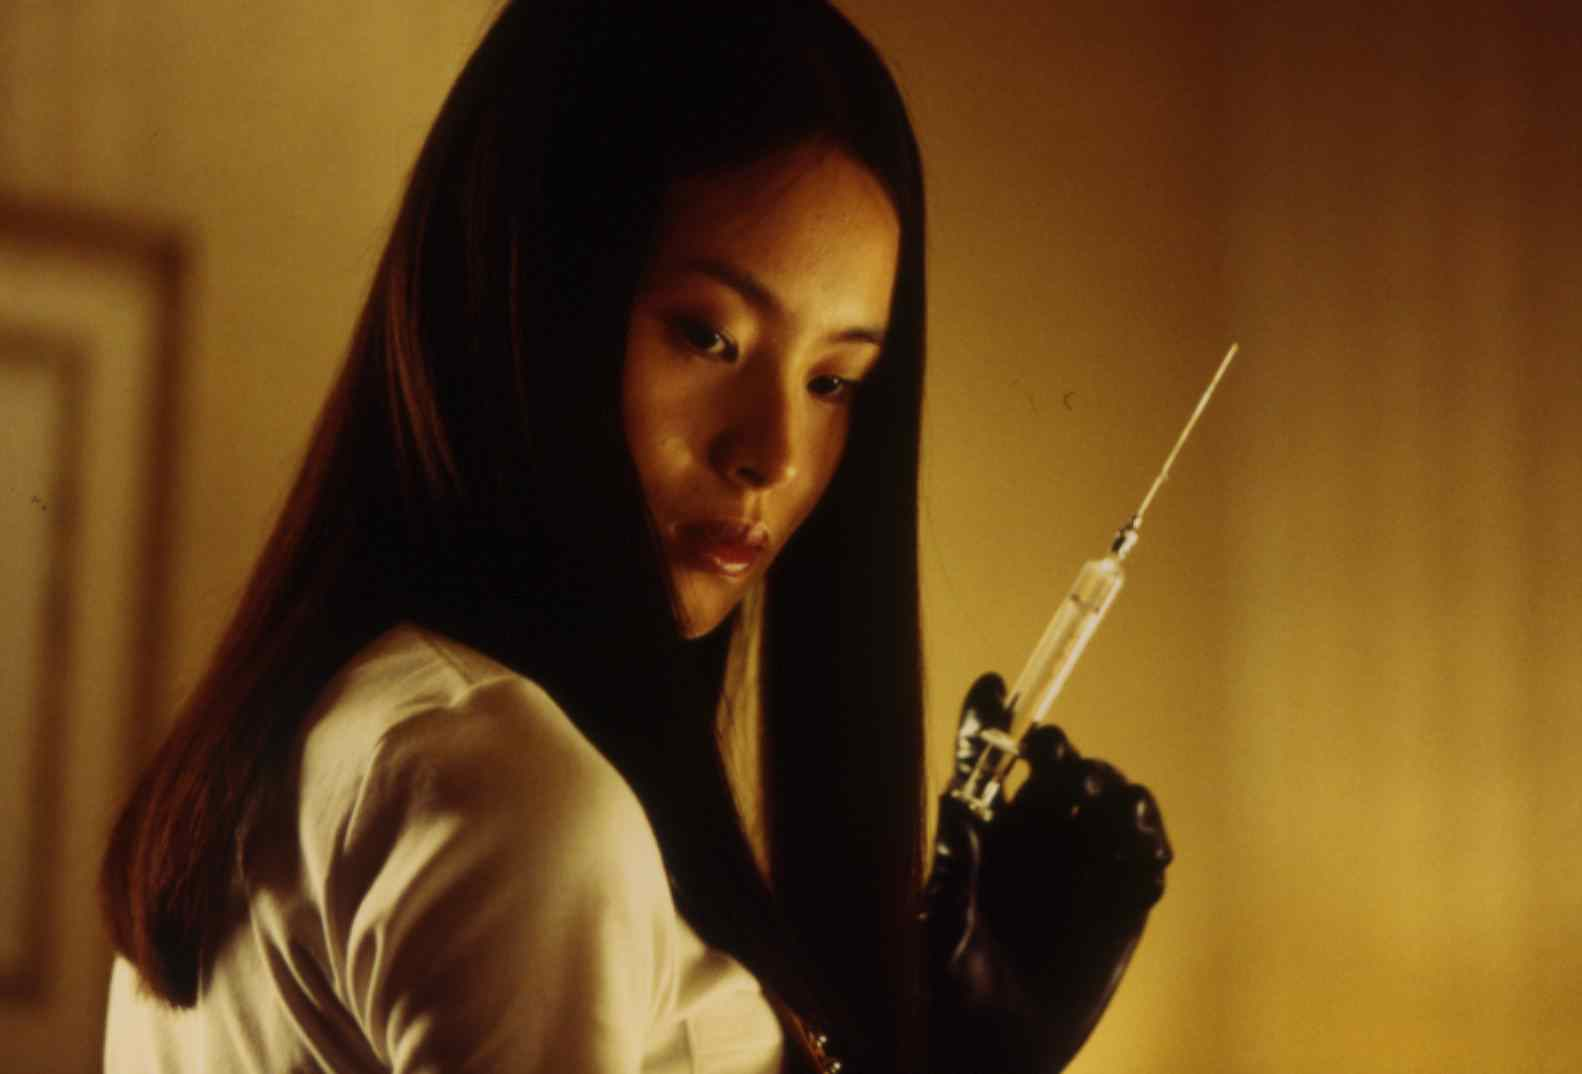 eihi shiina who plays Asami in the famous japanese thriller audition.